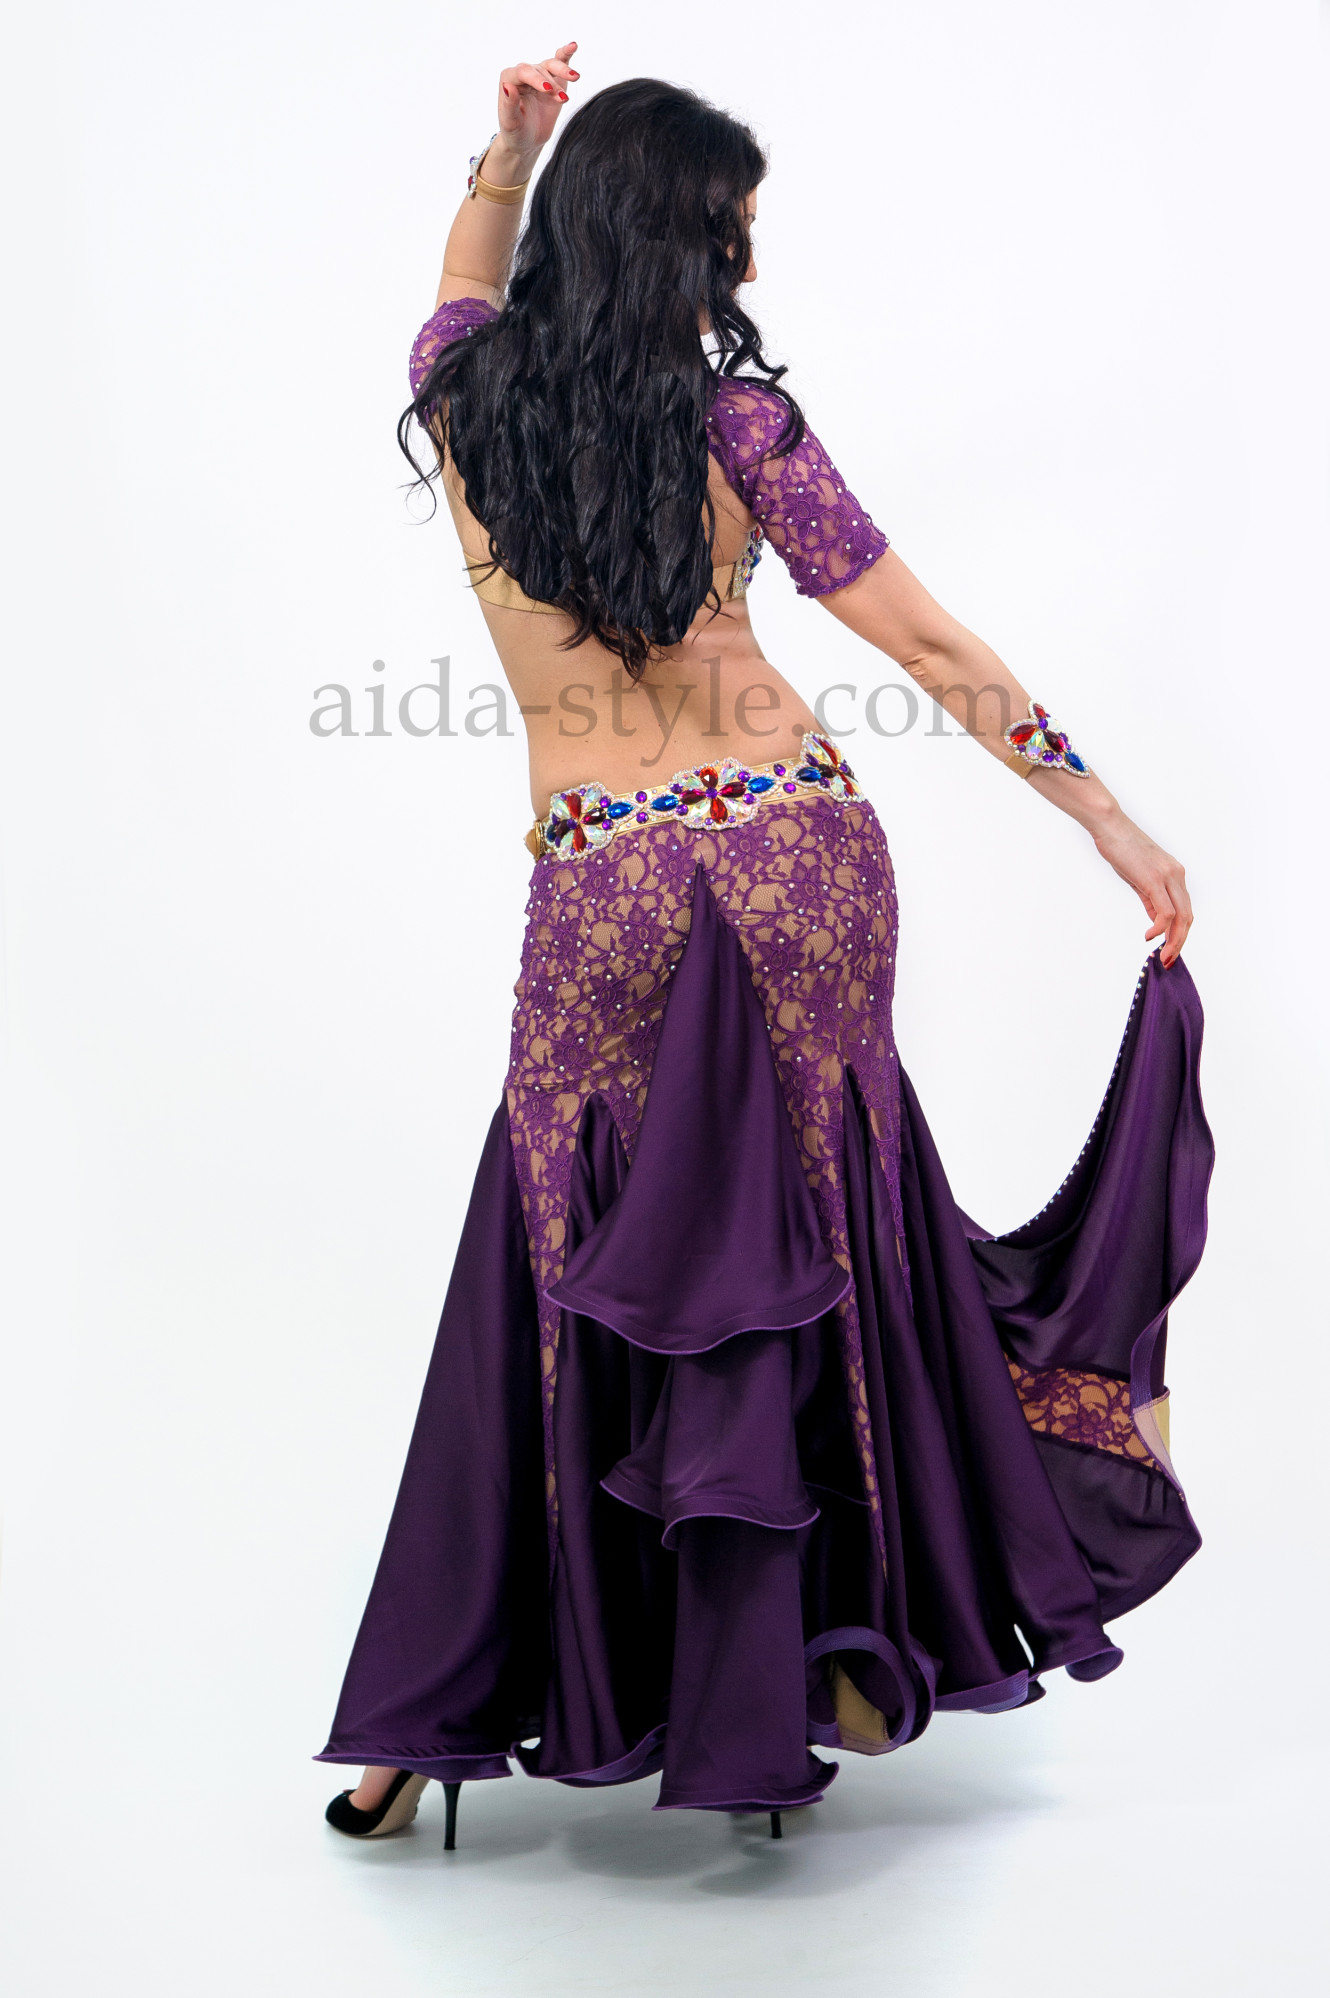 Professional belly dance costume in lilac / violet color. Bra and belt are decorated with big bright stones of red, blue and lilac colors